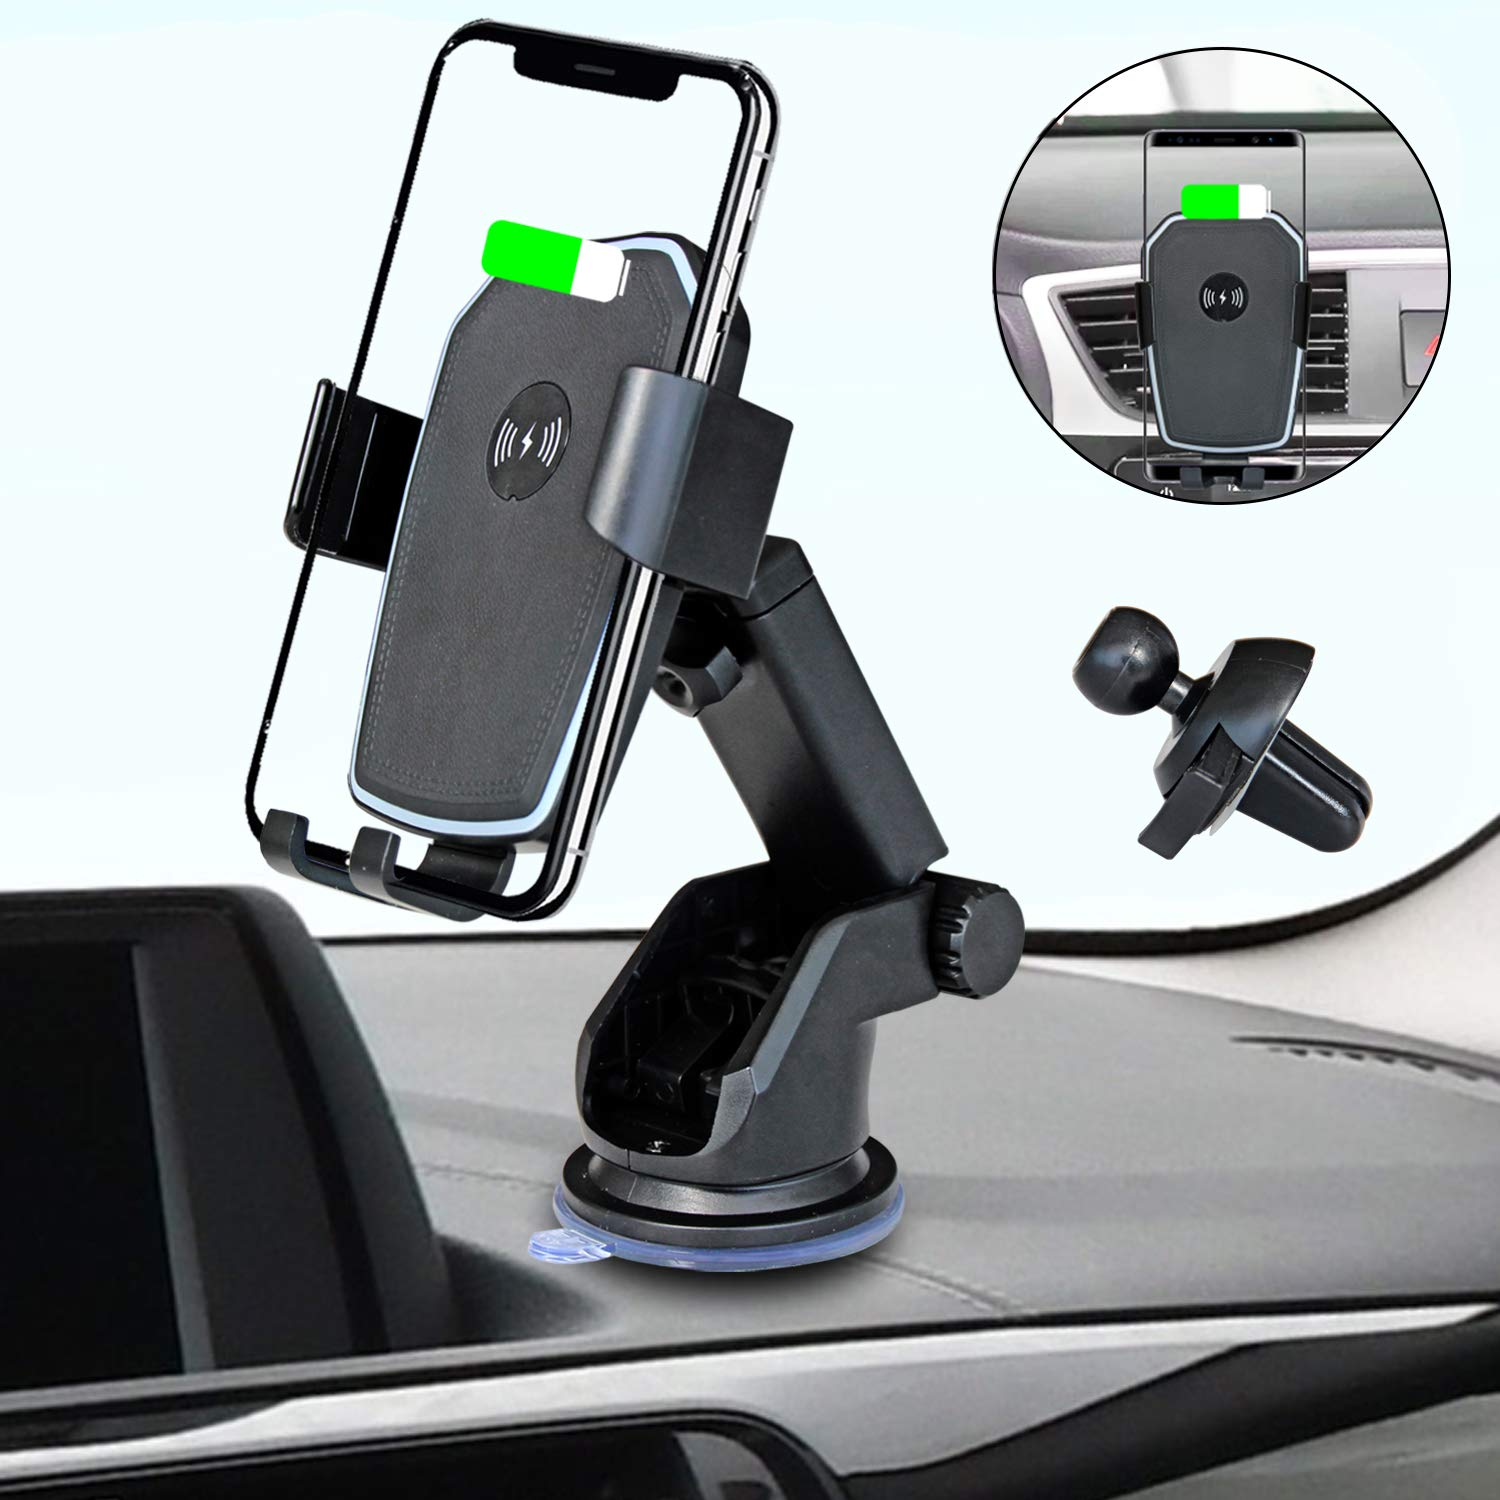 Wireless Car Charger Mount Auto Clamping Gravity Sensor Car Mount 10W Qi Power Fast Charge Air Vent Phone Holder Compatible for iPhone Xs/Max/X/XR/8/8 Plus,Samsung Note 9/ S9/ S9+/ S8 All Qi Enabled by Medoon